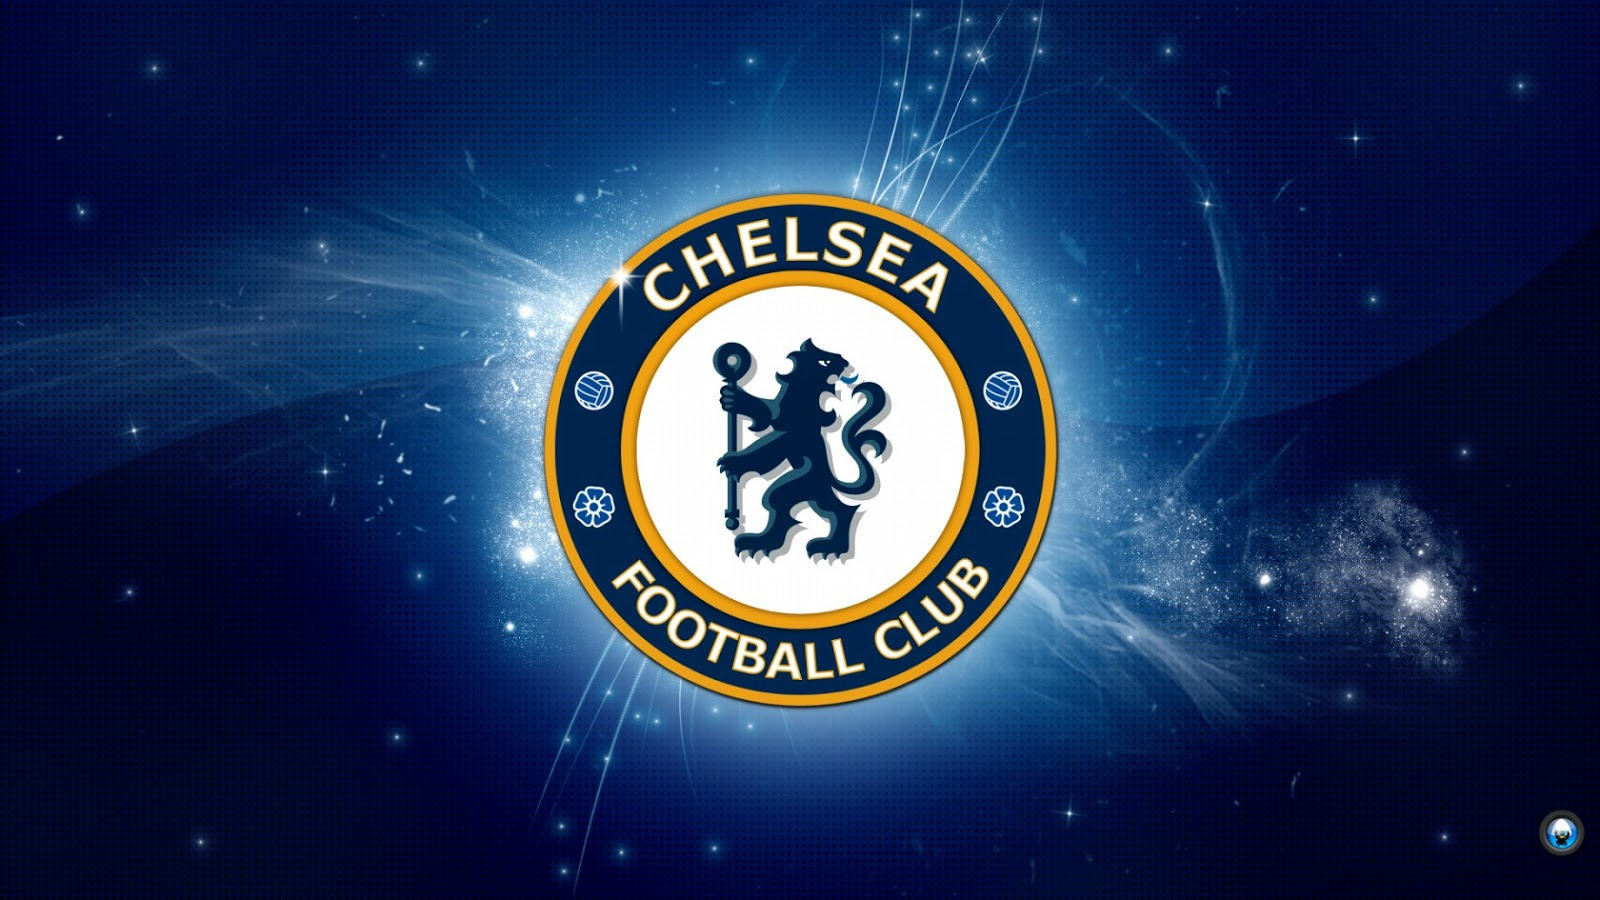 All Wallpapers Chelsea FC Logo Wallpapers 2013 1600x900